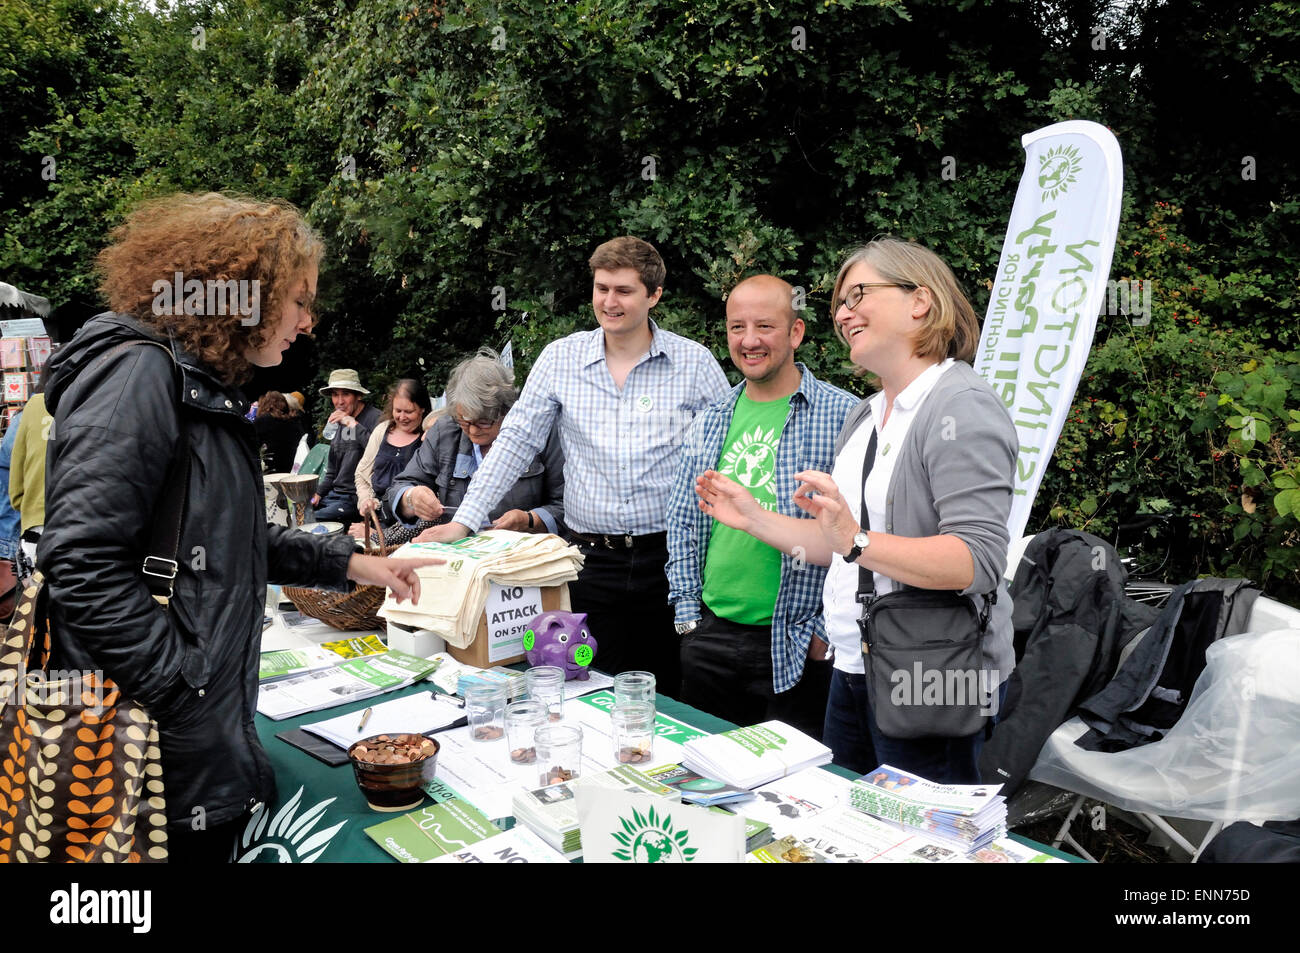 Green Party activists on stall, Gillespie Park Festival, Highbury, London Borough of Islington Britain UK - Stock Image